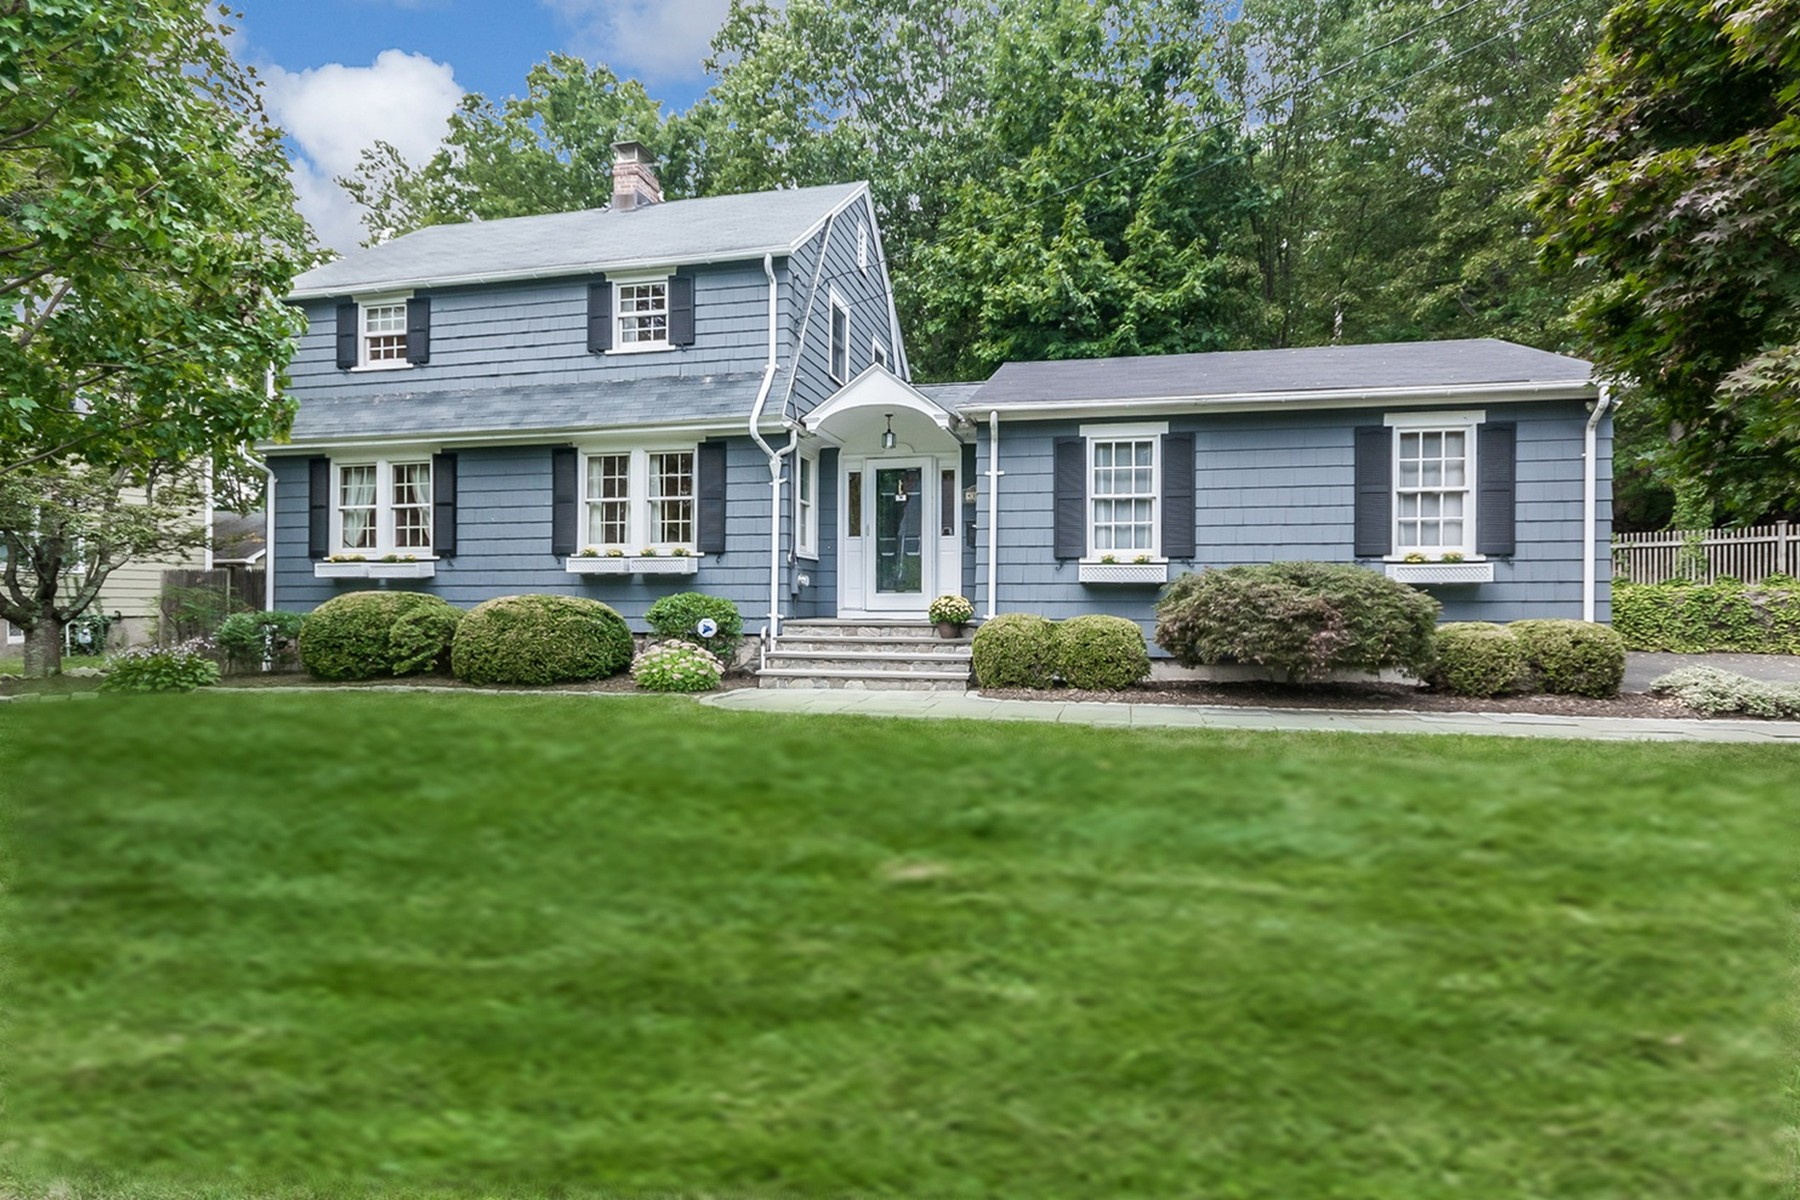 Property For Sale at Charming Stratfield Dutch Colonial on Privately Sited Corner Lot